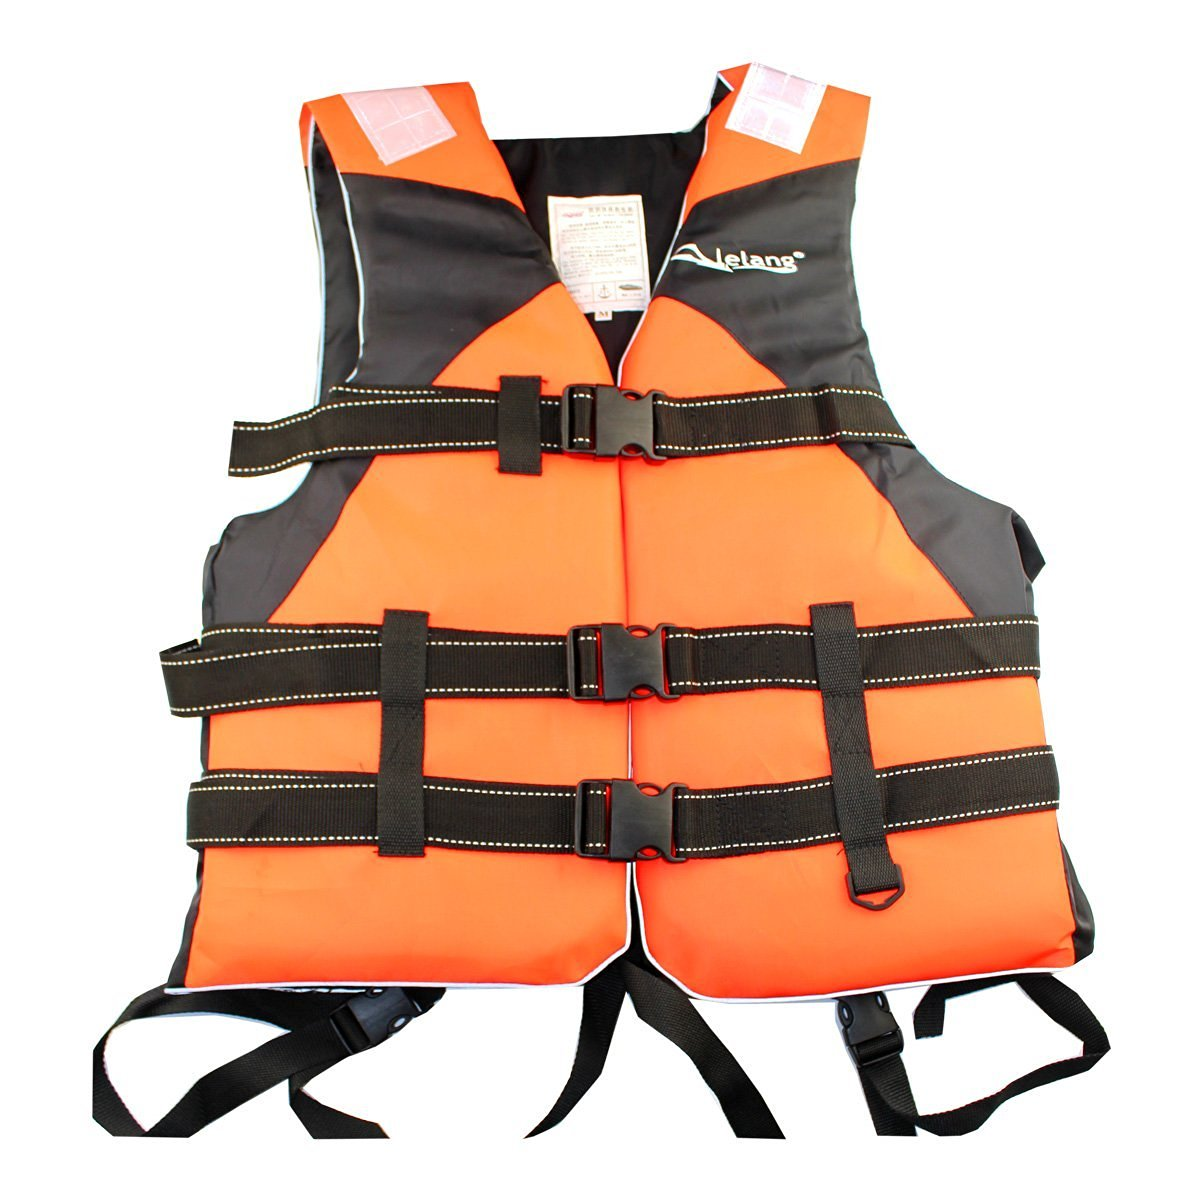 Adult life jackets drift snorkeling surfing wear vests vests take off with life jackets , orange , l